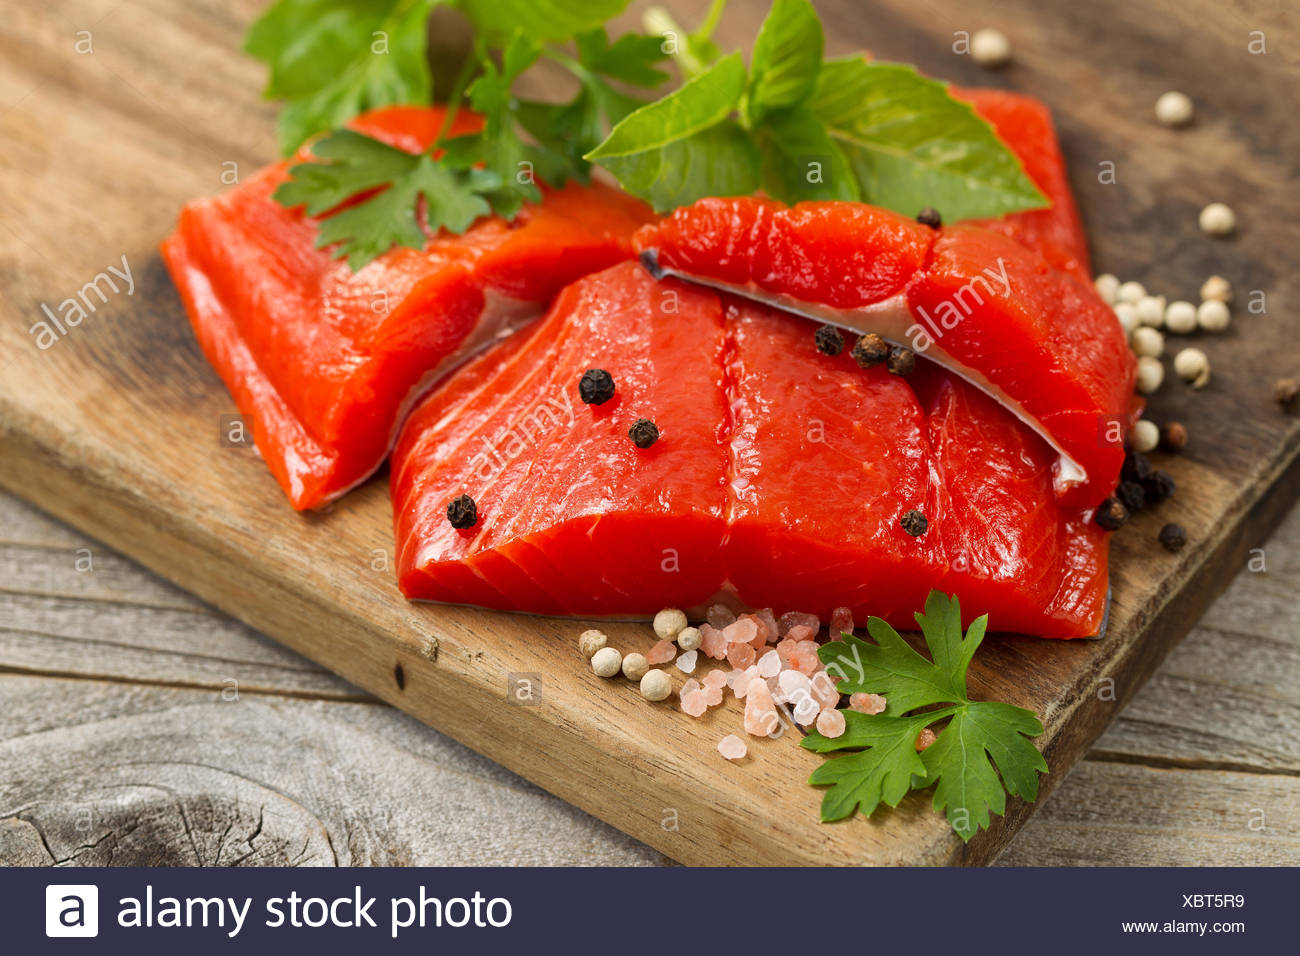 Fresh bright red Copper River Salmon fillets on rustic wooden server with spices and herbs - Stock Image